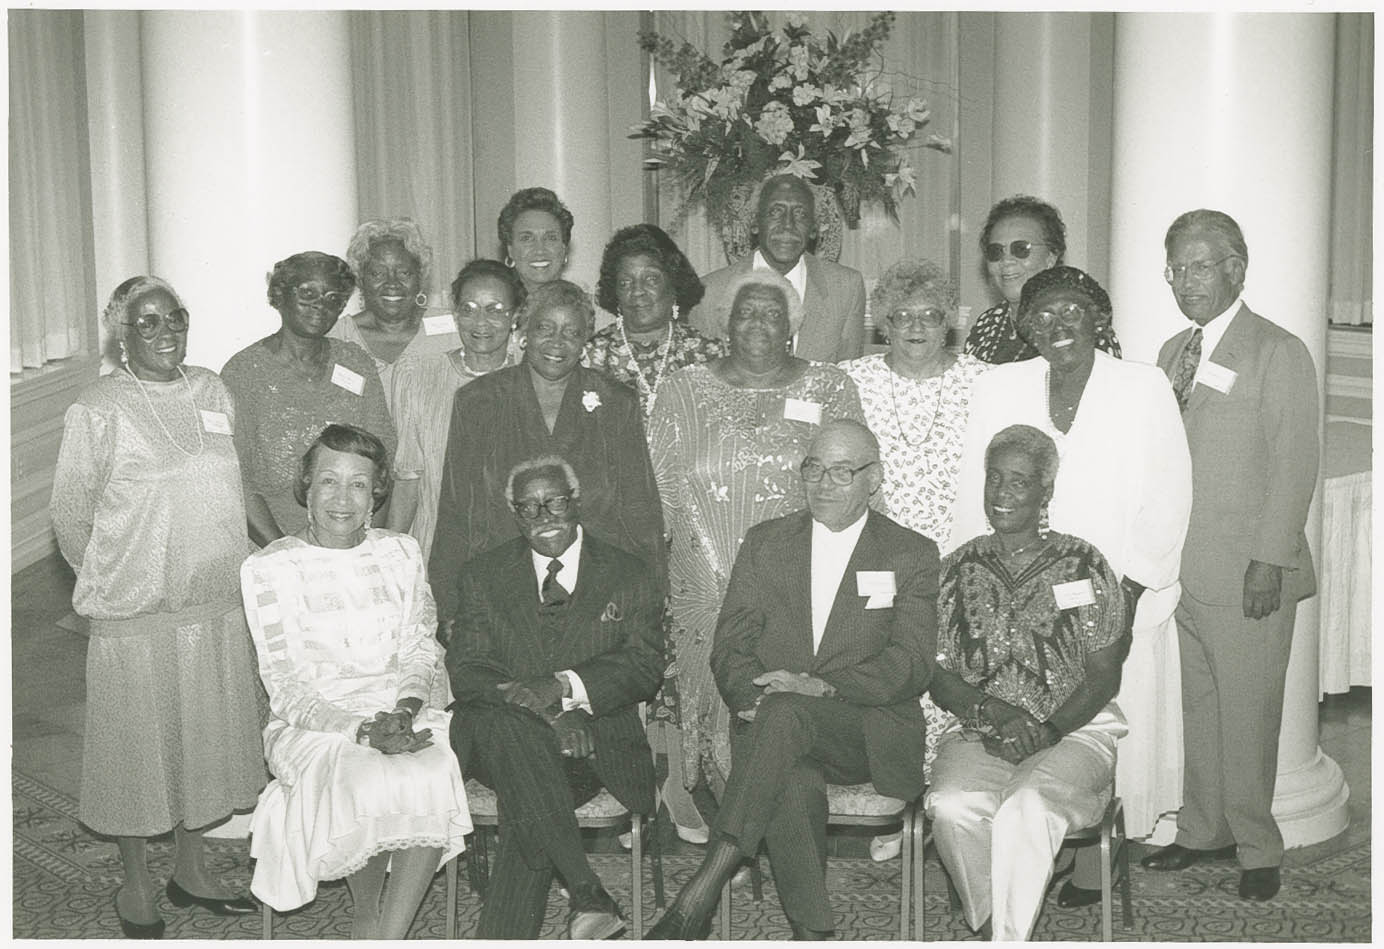 Avery Normal Institute Class of 1940 Fiftieth Anniversary Picture